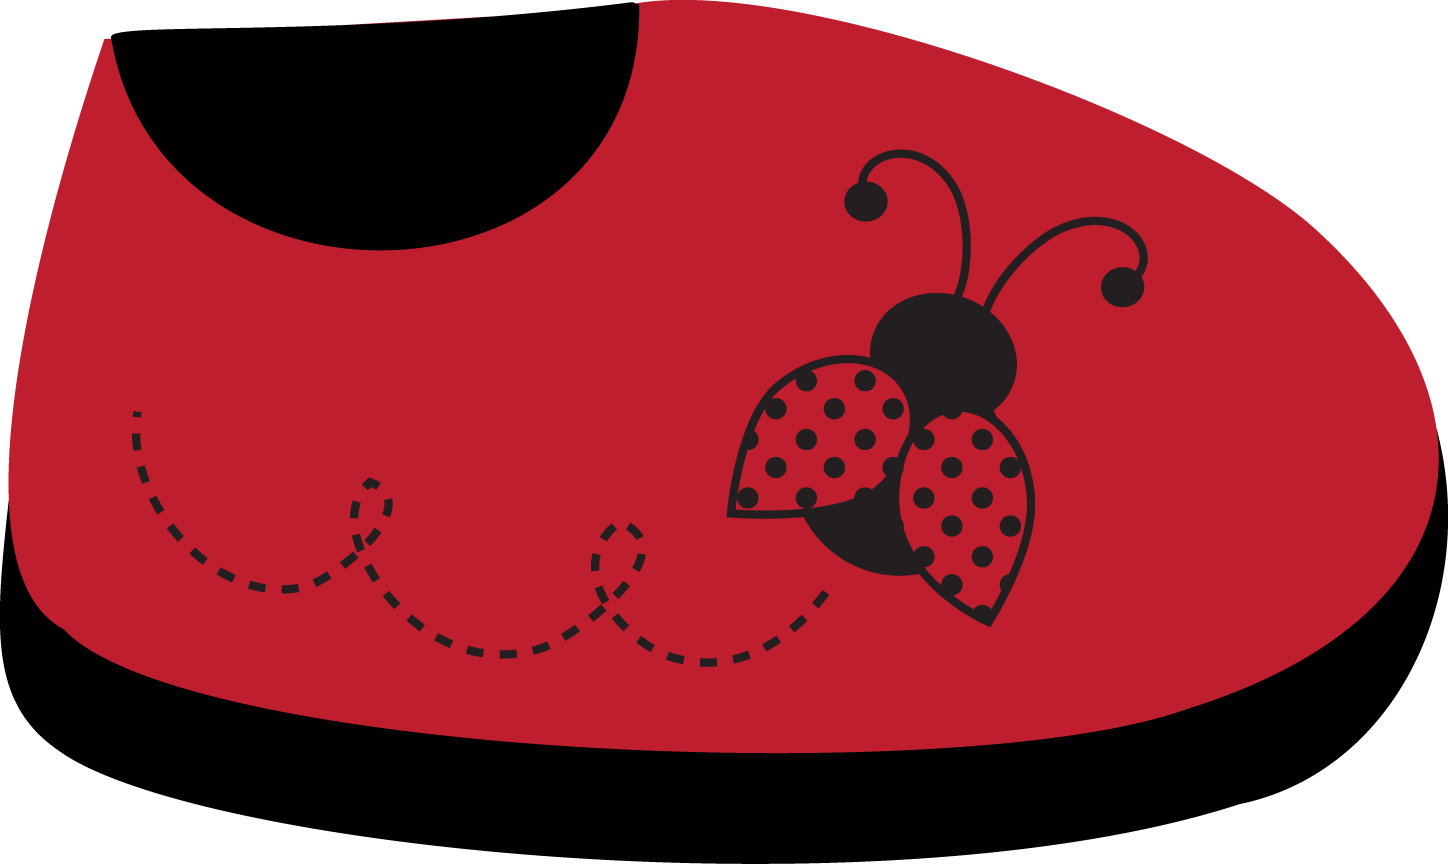 Sgblogosfera mar a jos. Ladybug clipart baby shower